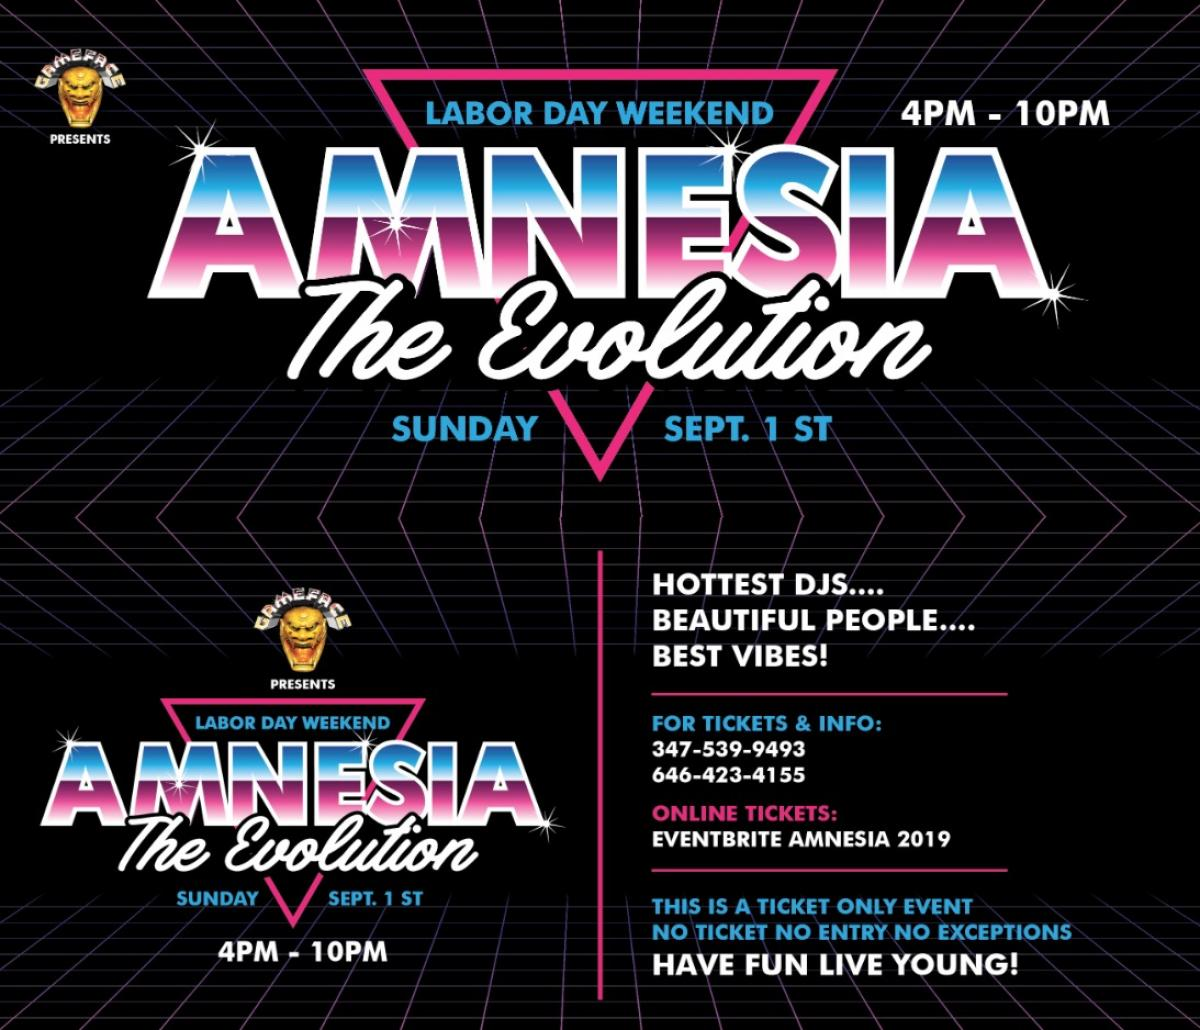 Amnesia flyer or graphic.